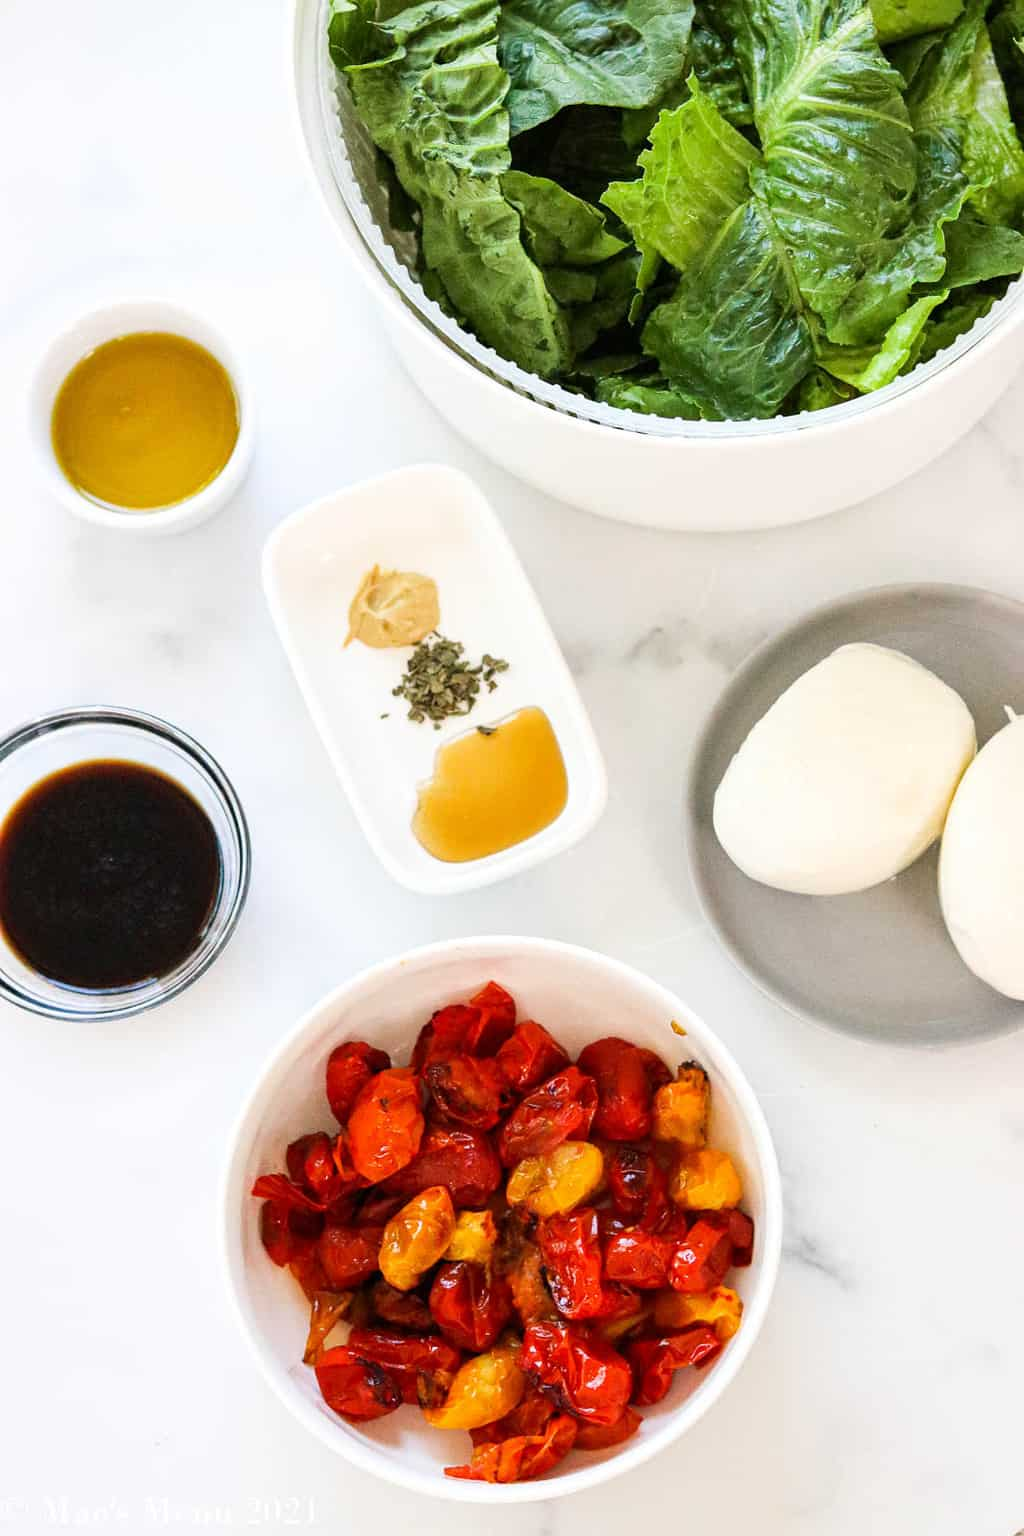 An overhead shot of the ingredients for this burrata salad with roast tomatoes